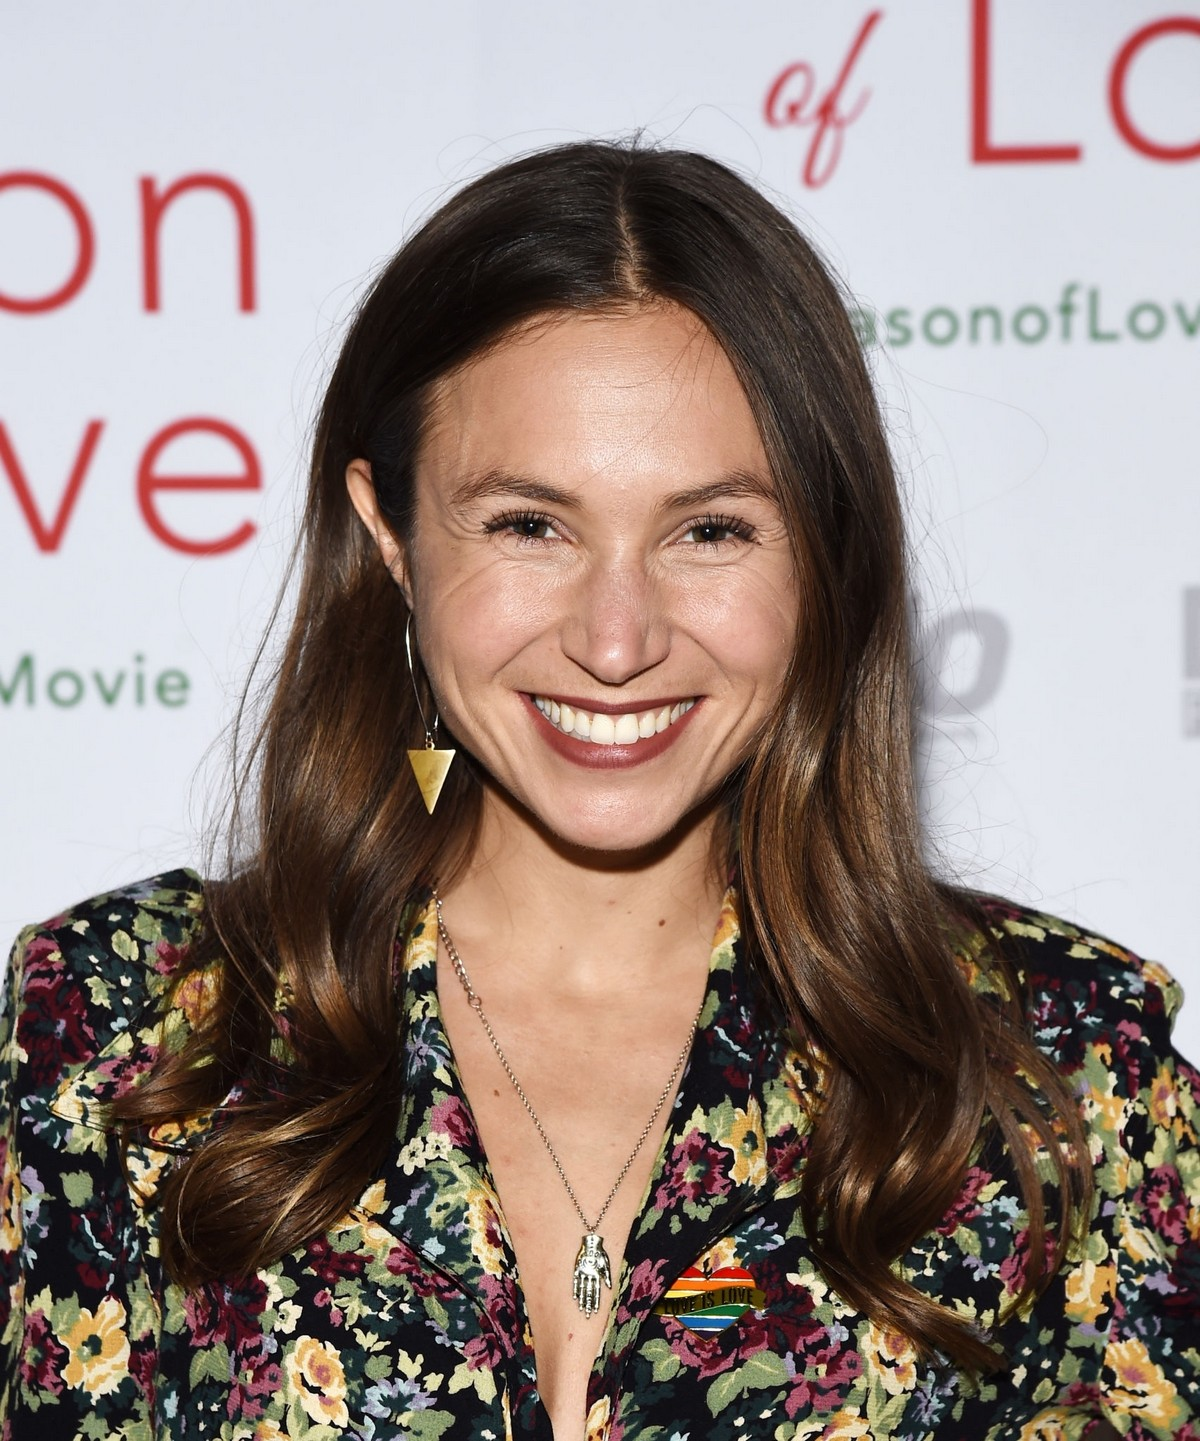 """Dominique Provost-Chalkley arrives at Premiere of """"Season of Love"""" at the Landmark Theater in Los Angeles 2019/11/21 6"""